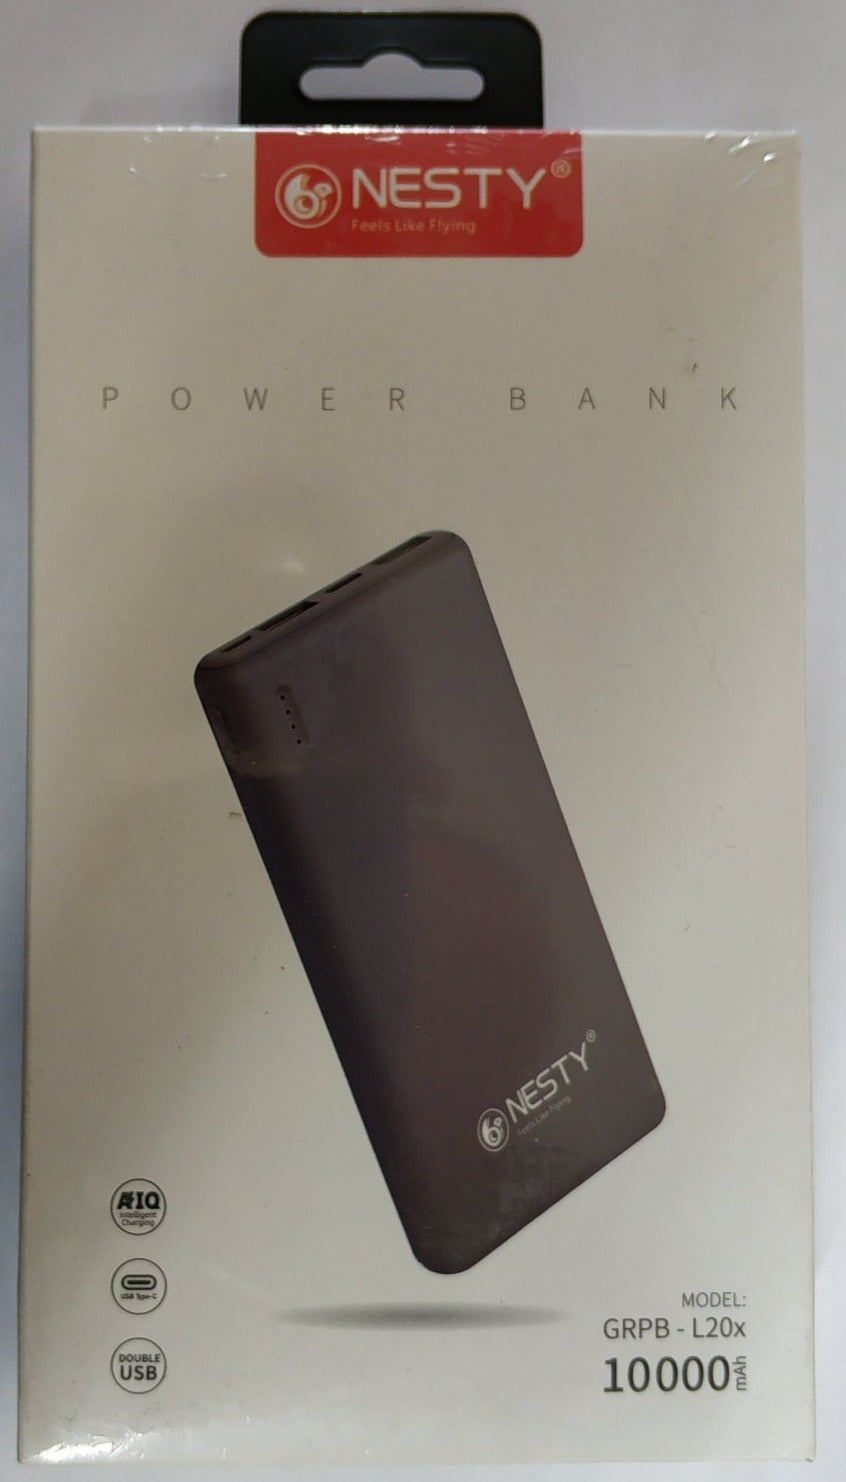 Nesty 10000mah Dual USB Power bank